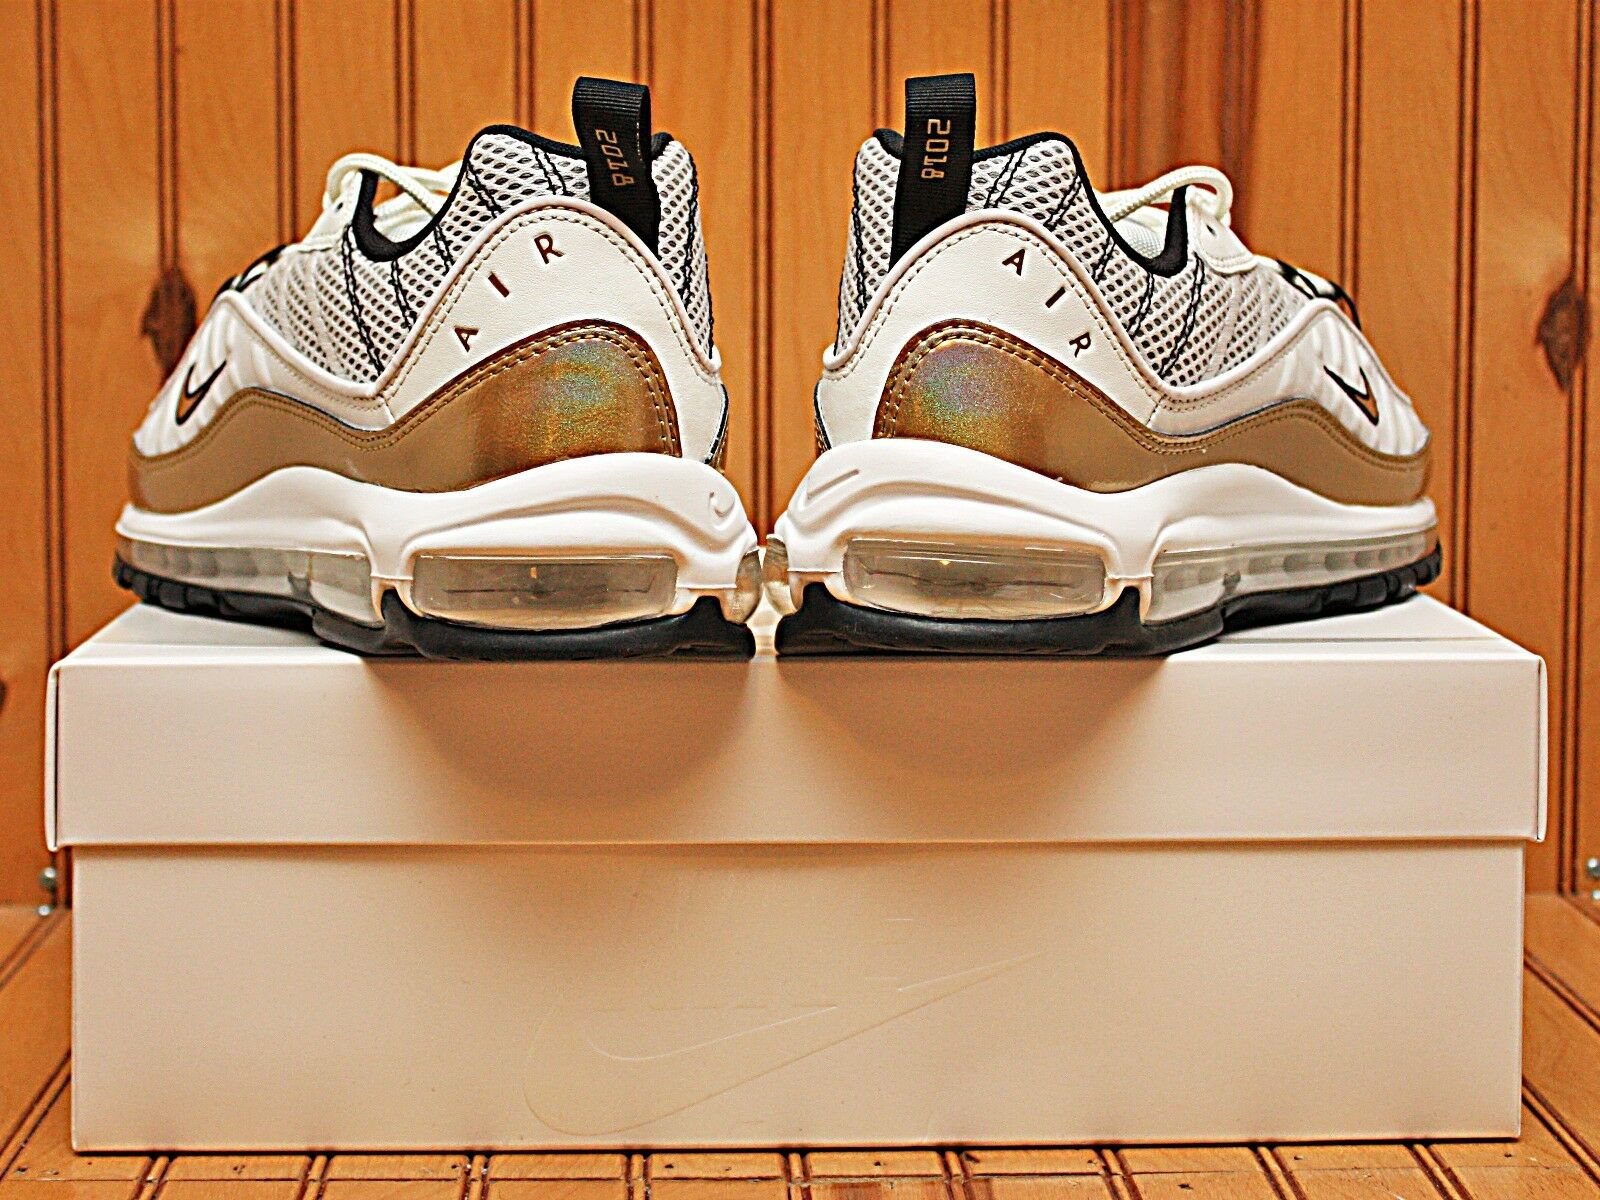 2018 Nike Air Max 98 UK Size 12 Hyper Local QS White Gold Aj6302 100